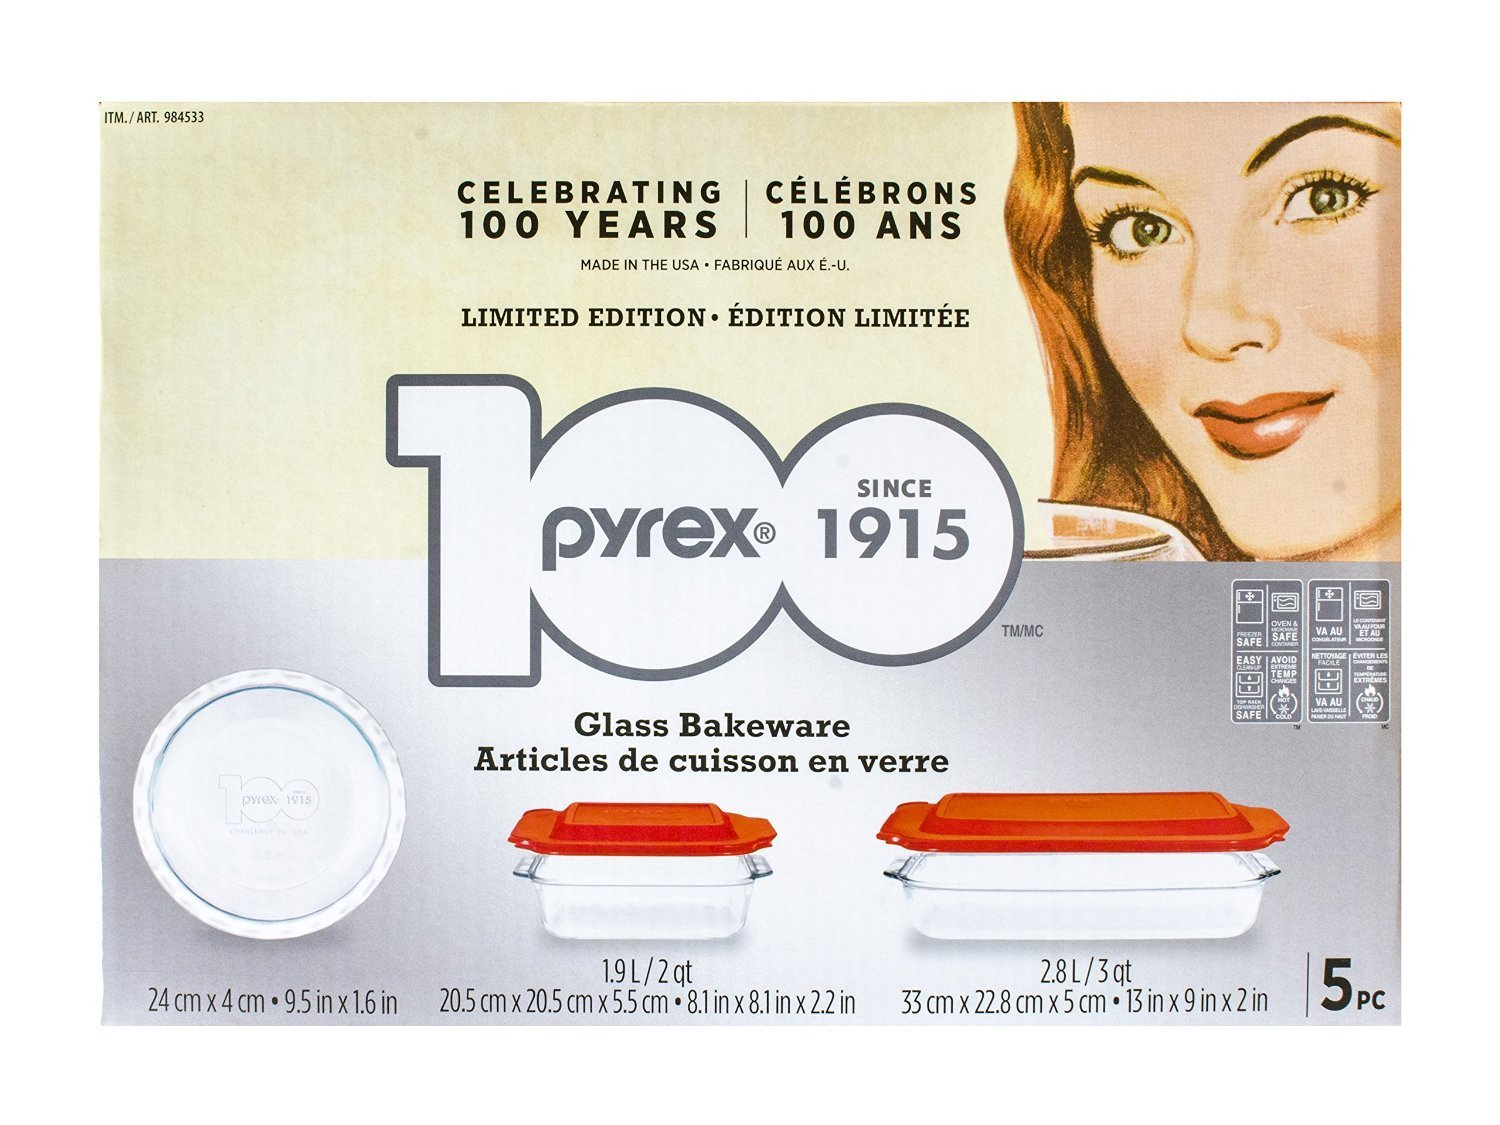 5-piece 100 Years Glass Bakeware Set (Limited Edition), Microwave, fridge, freezer & dishwasher safe By Pyrex... by